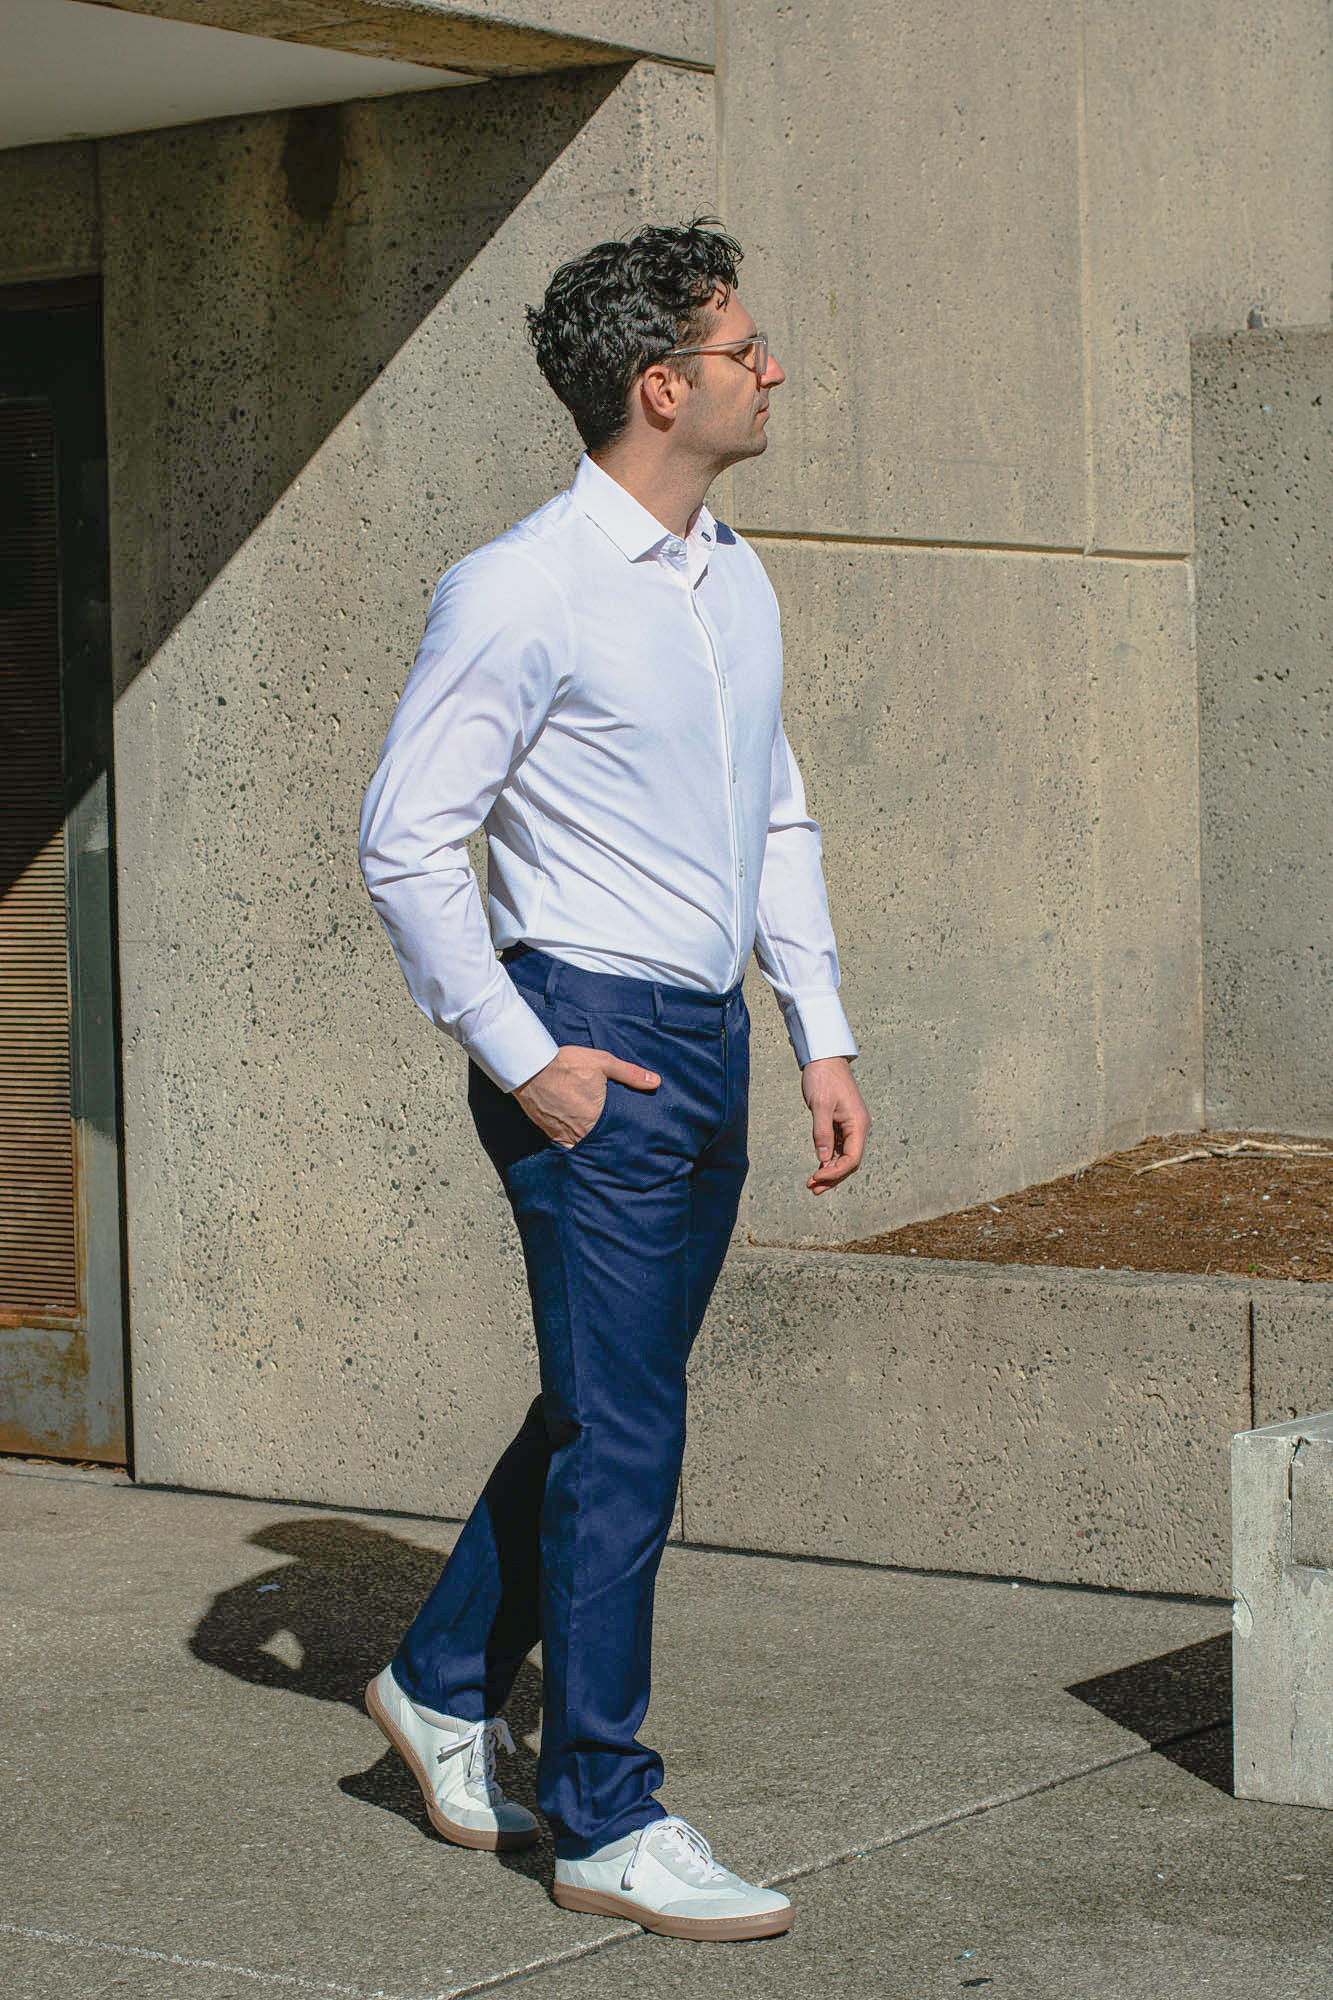 mizzen main baron chinos and leeward shirt